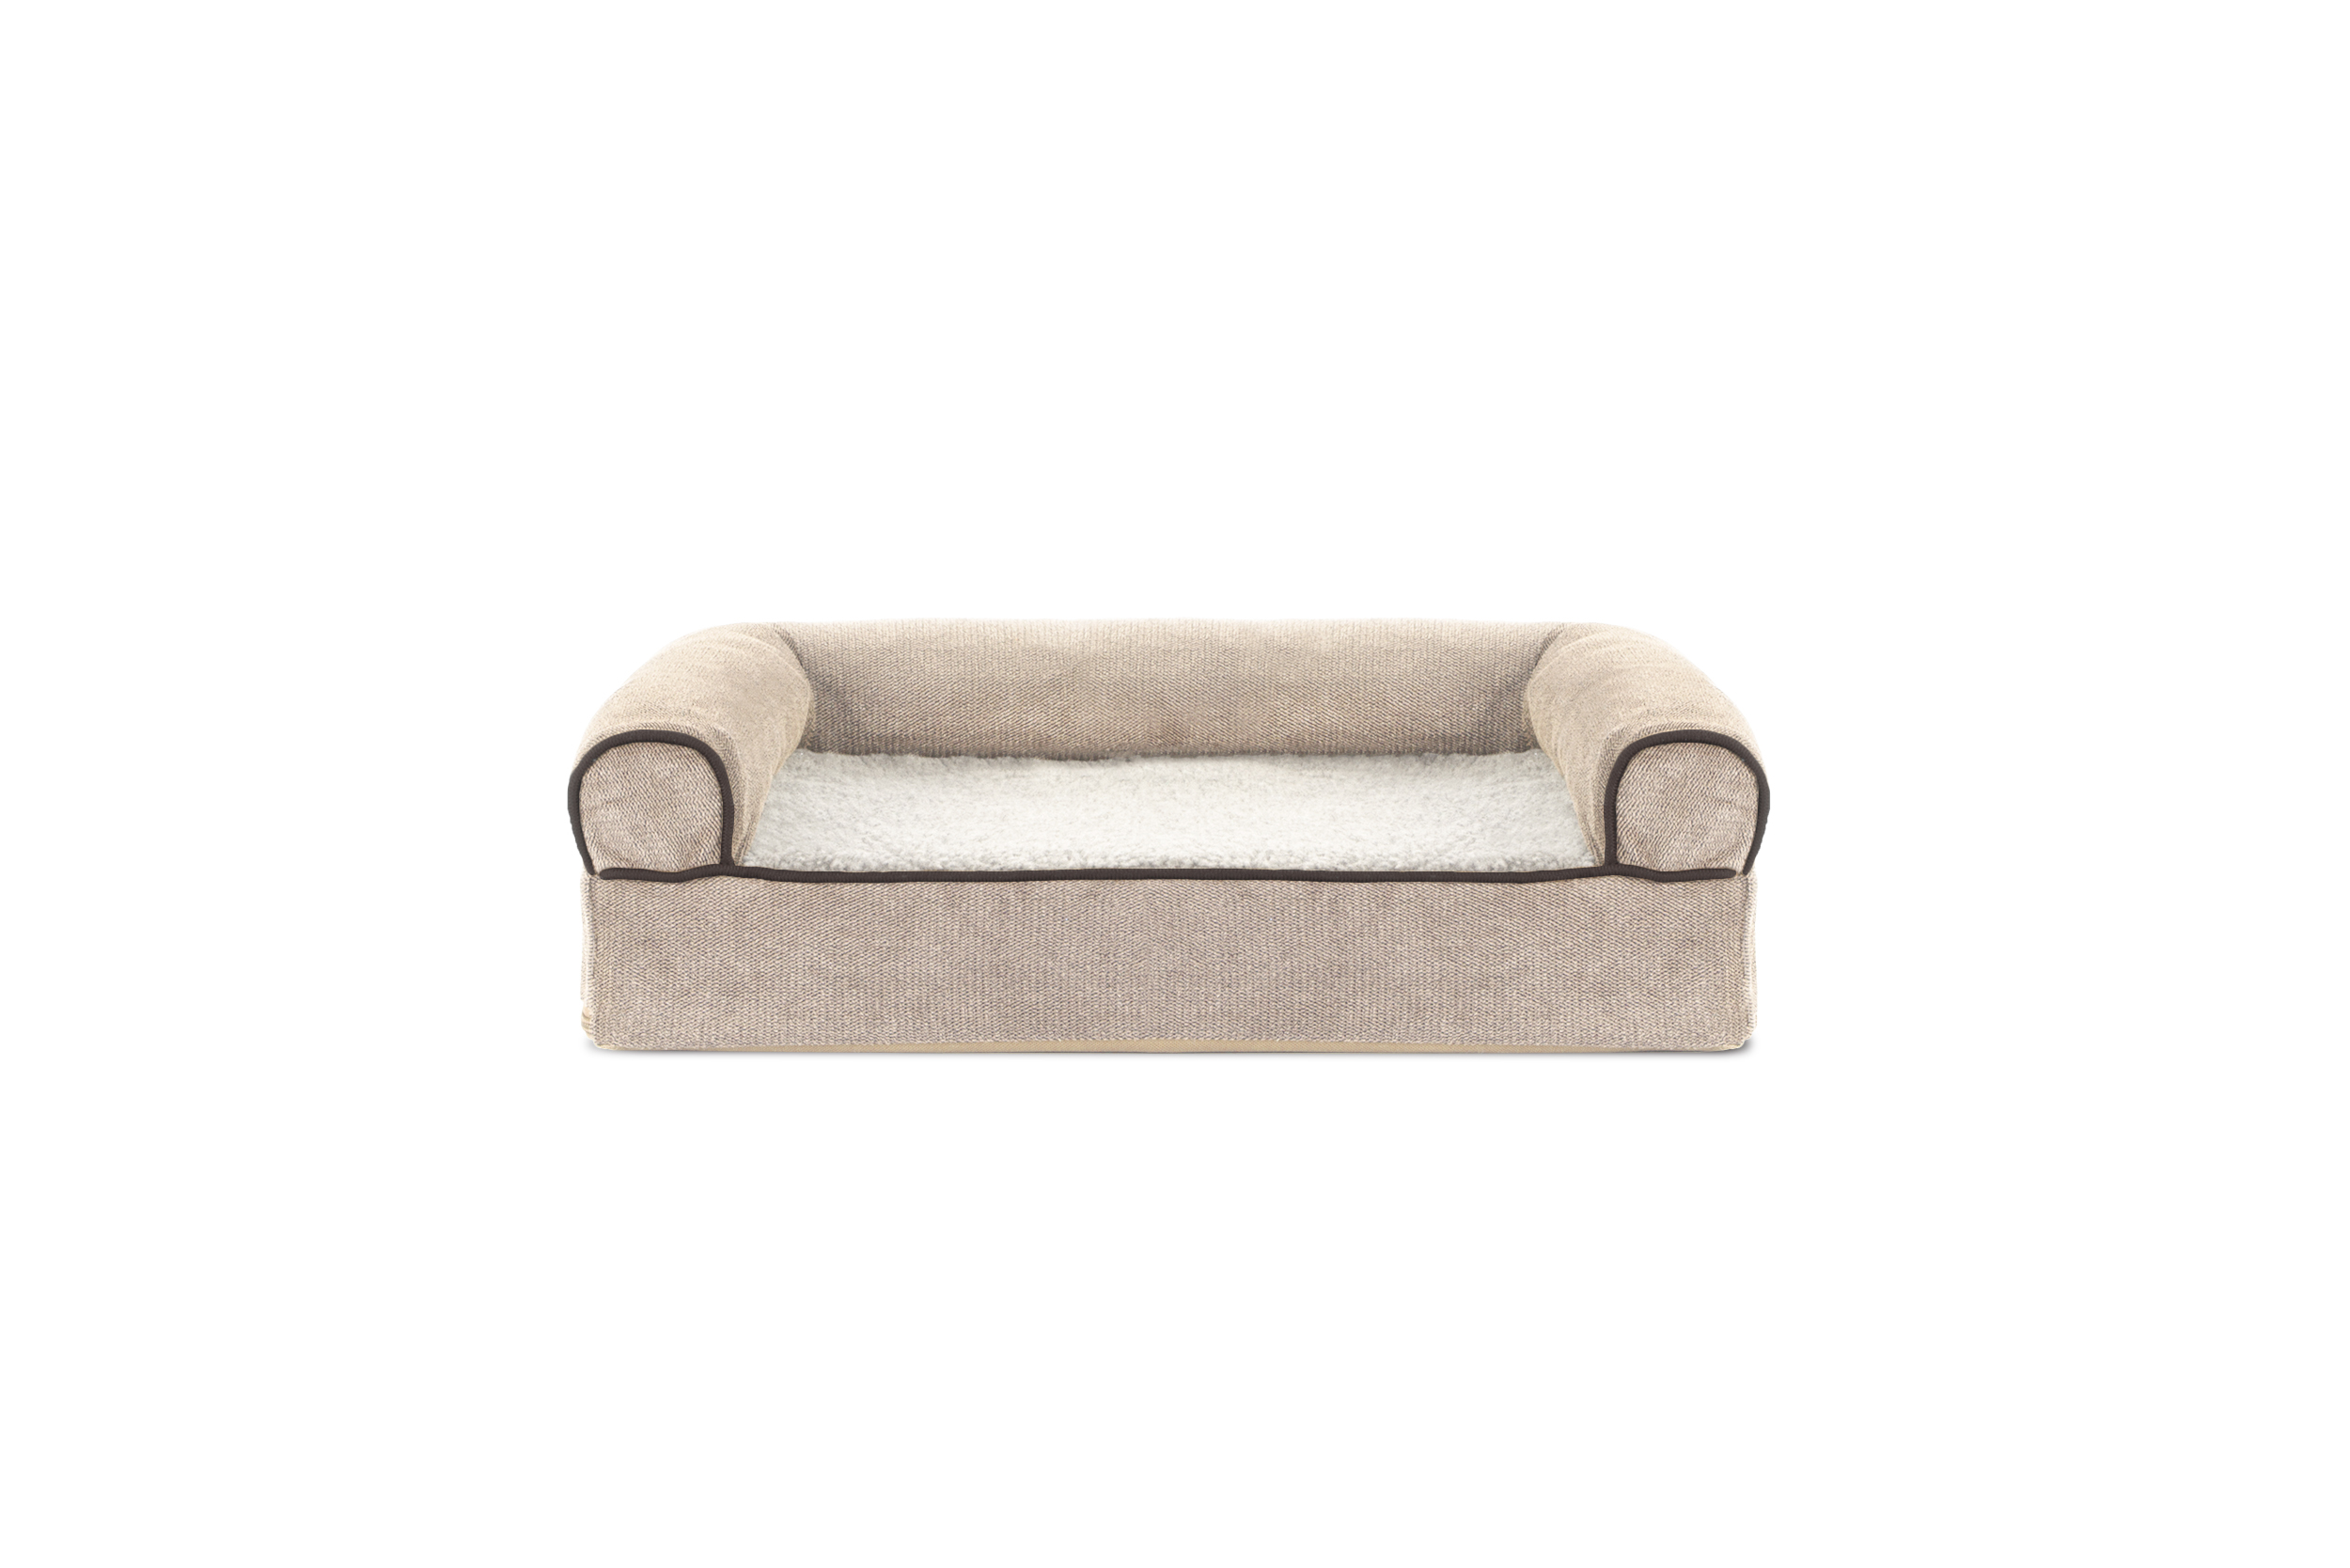 soft sofa dog bed crate and barrel sleeper sofas faux fleece chenille woven orthopedic pet